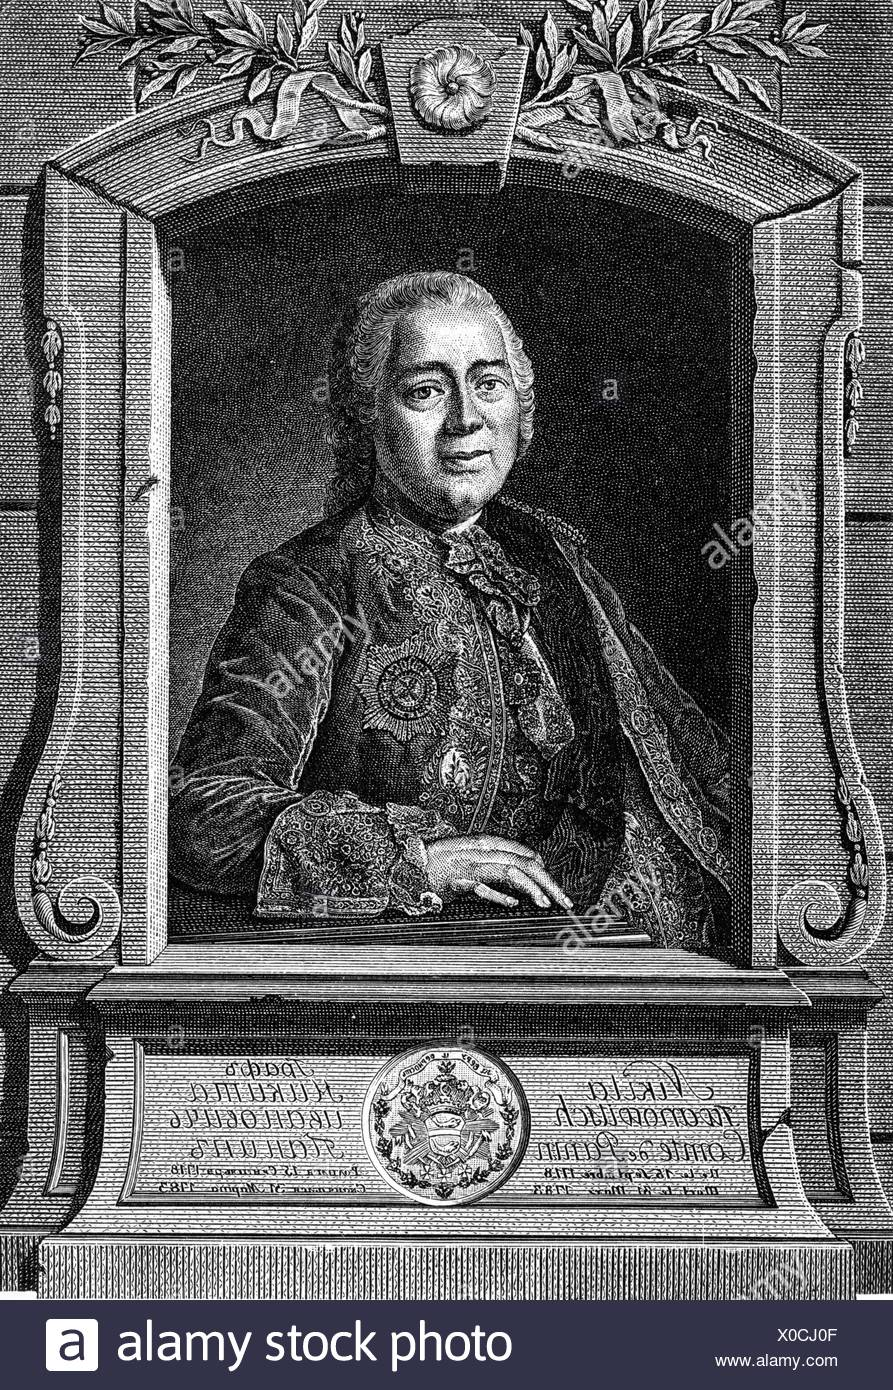 Panin, Nikita Ivanovich, 26.9.1718 - 20.3.1783, Russian politician, Minister of Foreign Affairs 1764 - 1780, half length, copper engraving, 18th century, , Artist's Copyright has not to be cleared - Stock Image